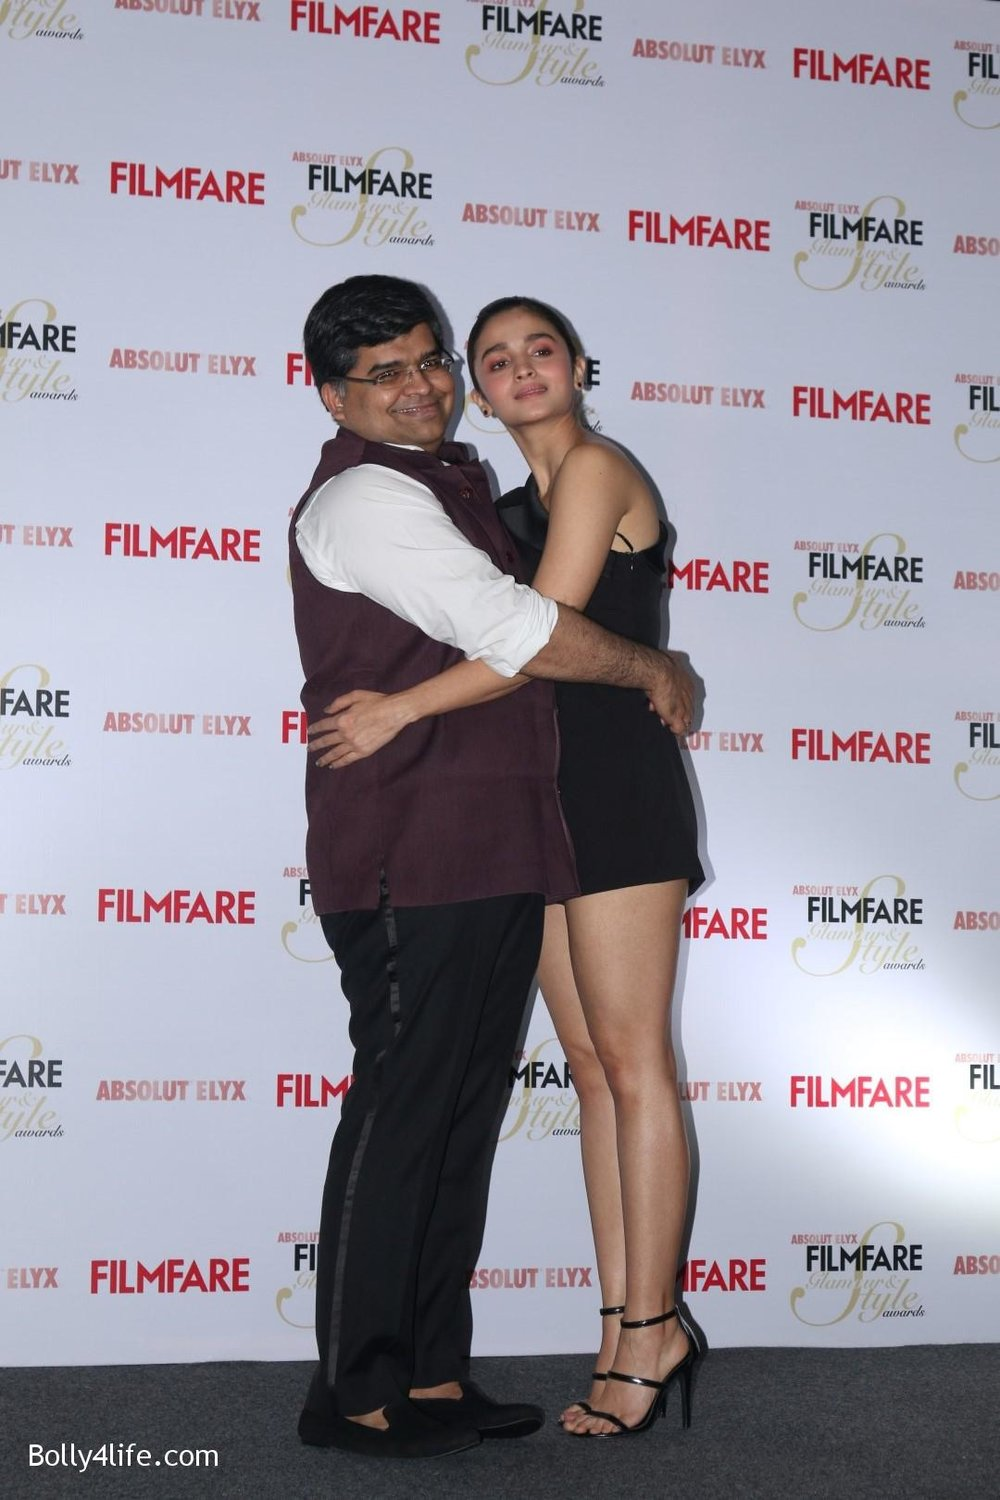 Alia-Bhatt-during-the-Absolut-Elyx-Filmfare-Glamour-and-Style-Awards-cover-launch-30.jpg